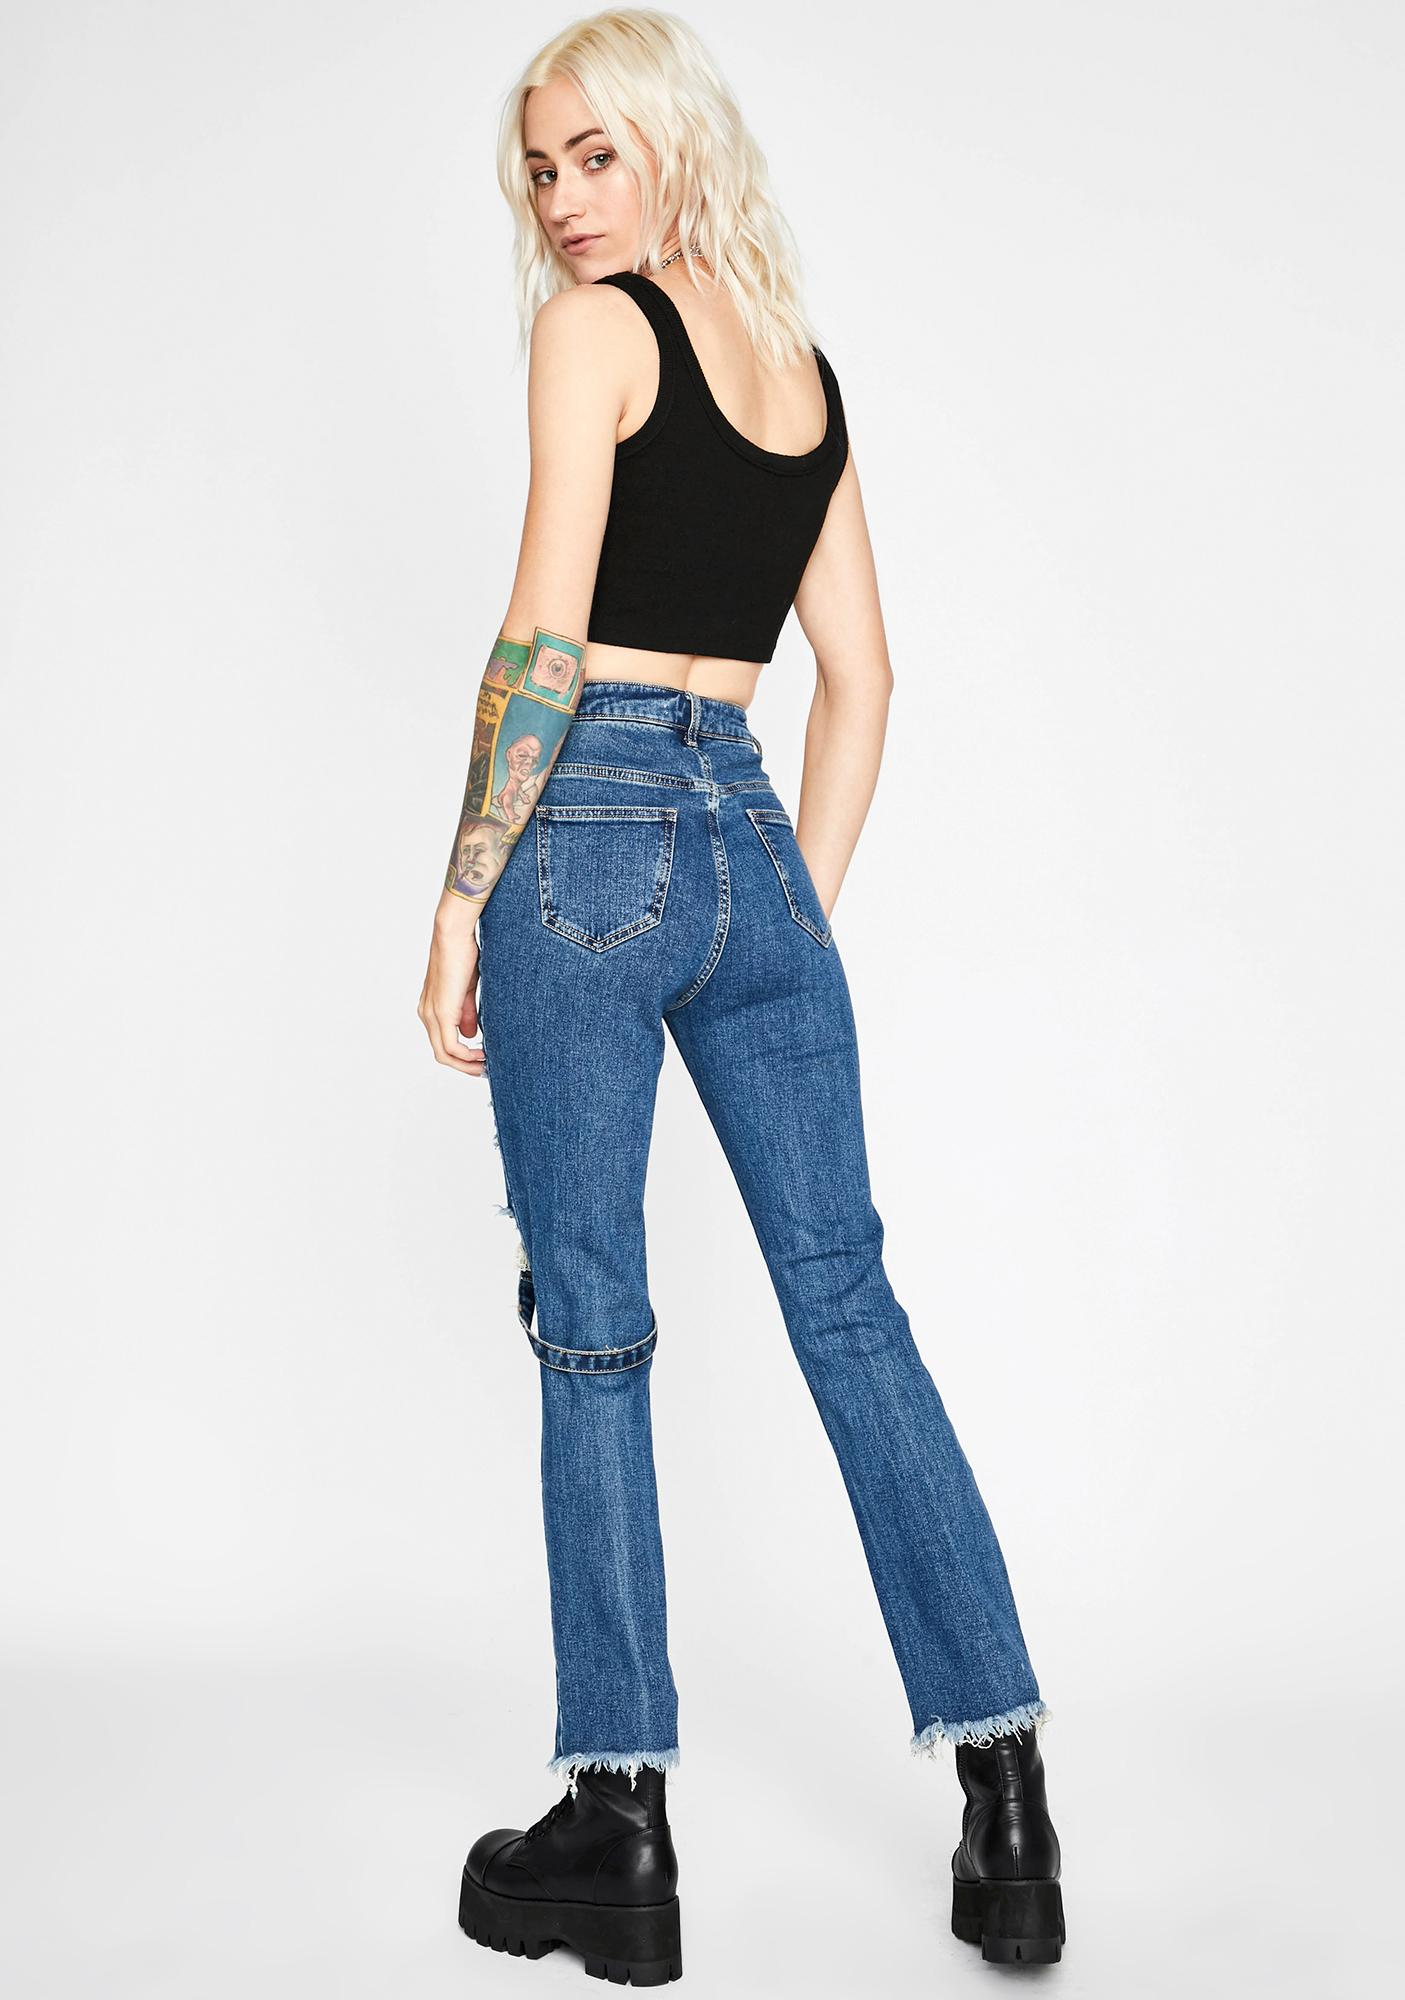 Babe Brutality Harness Jeans